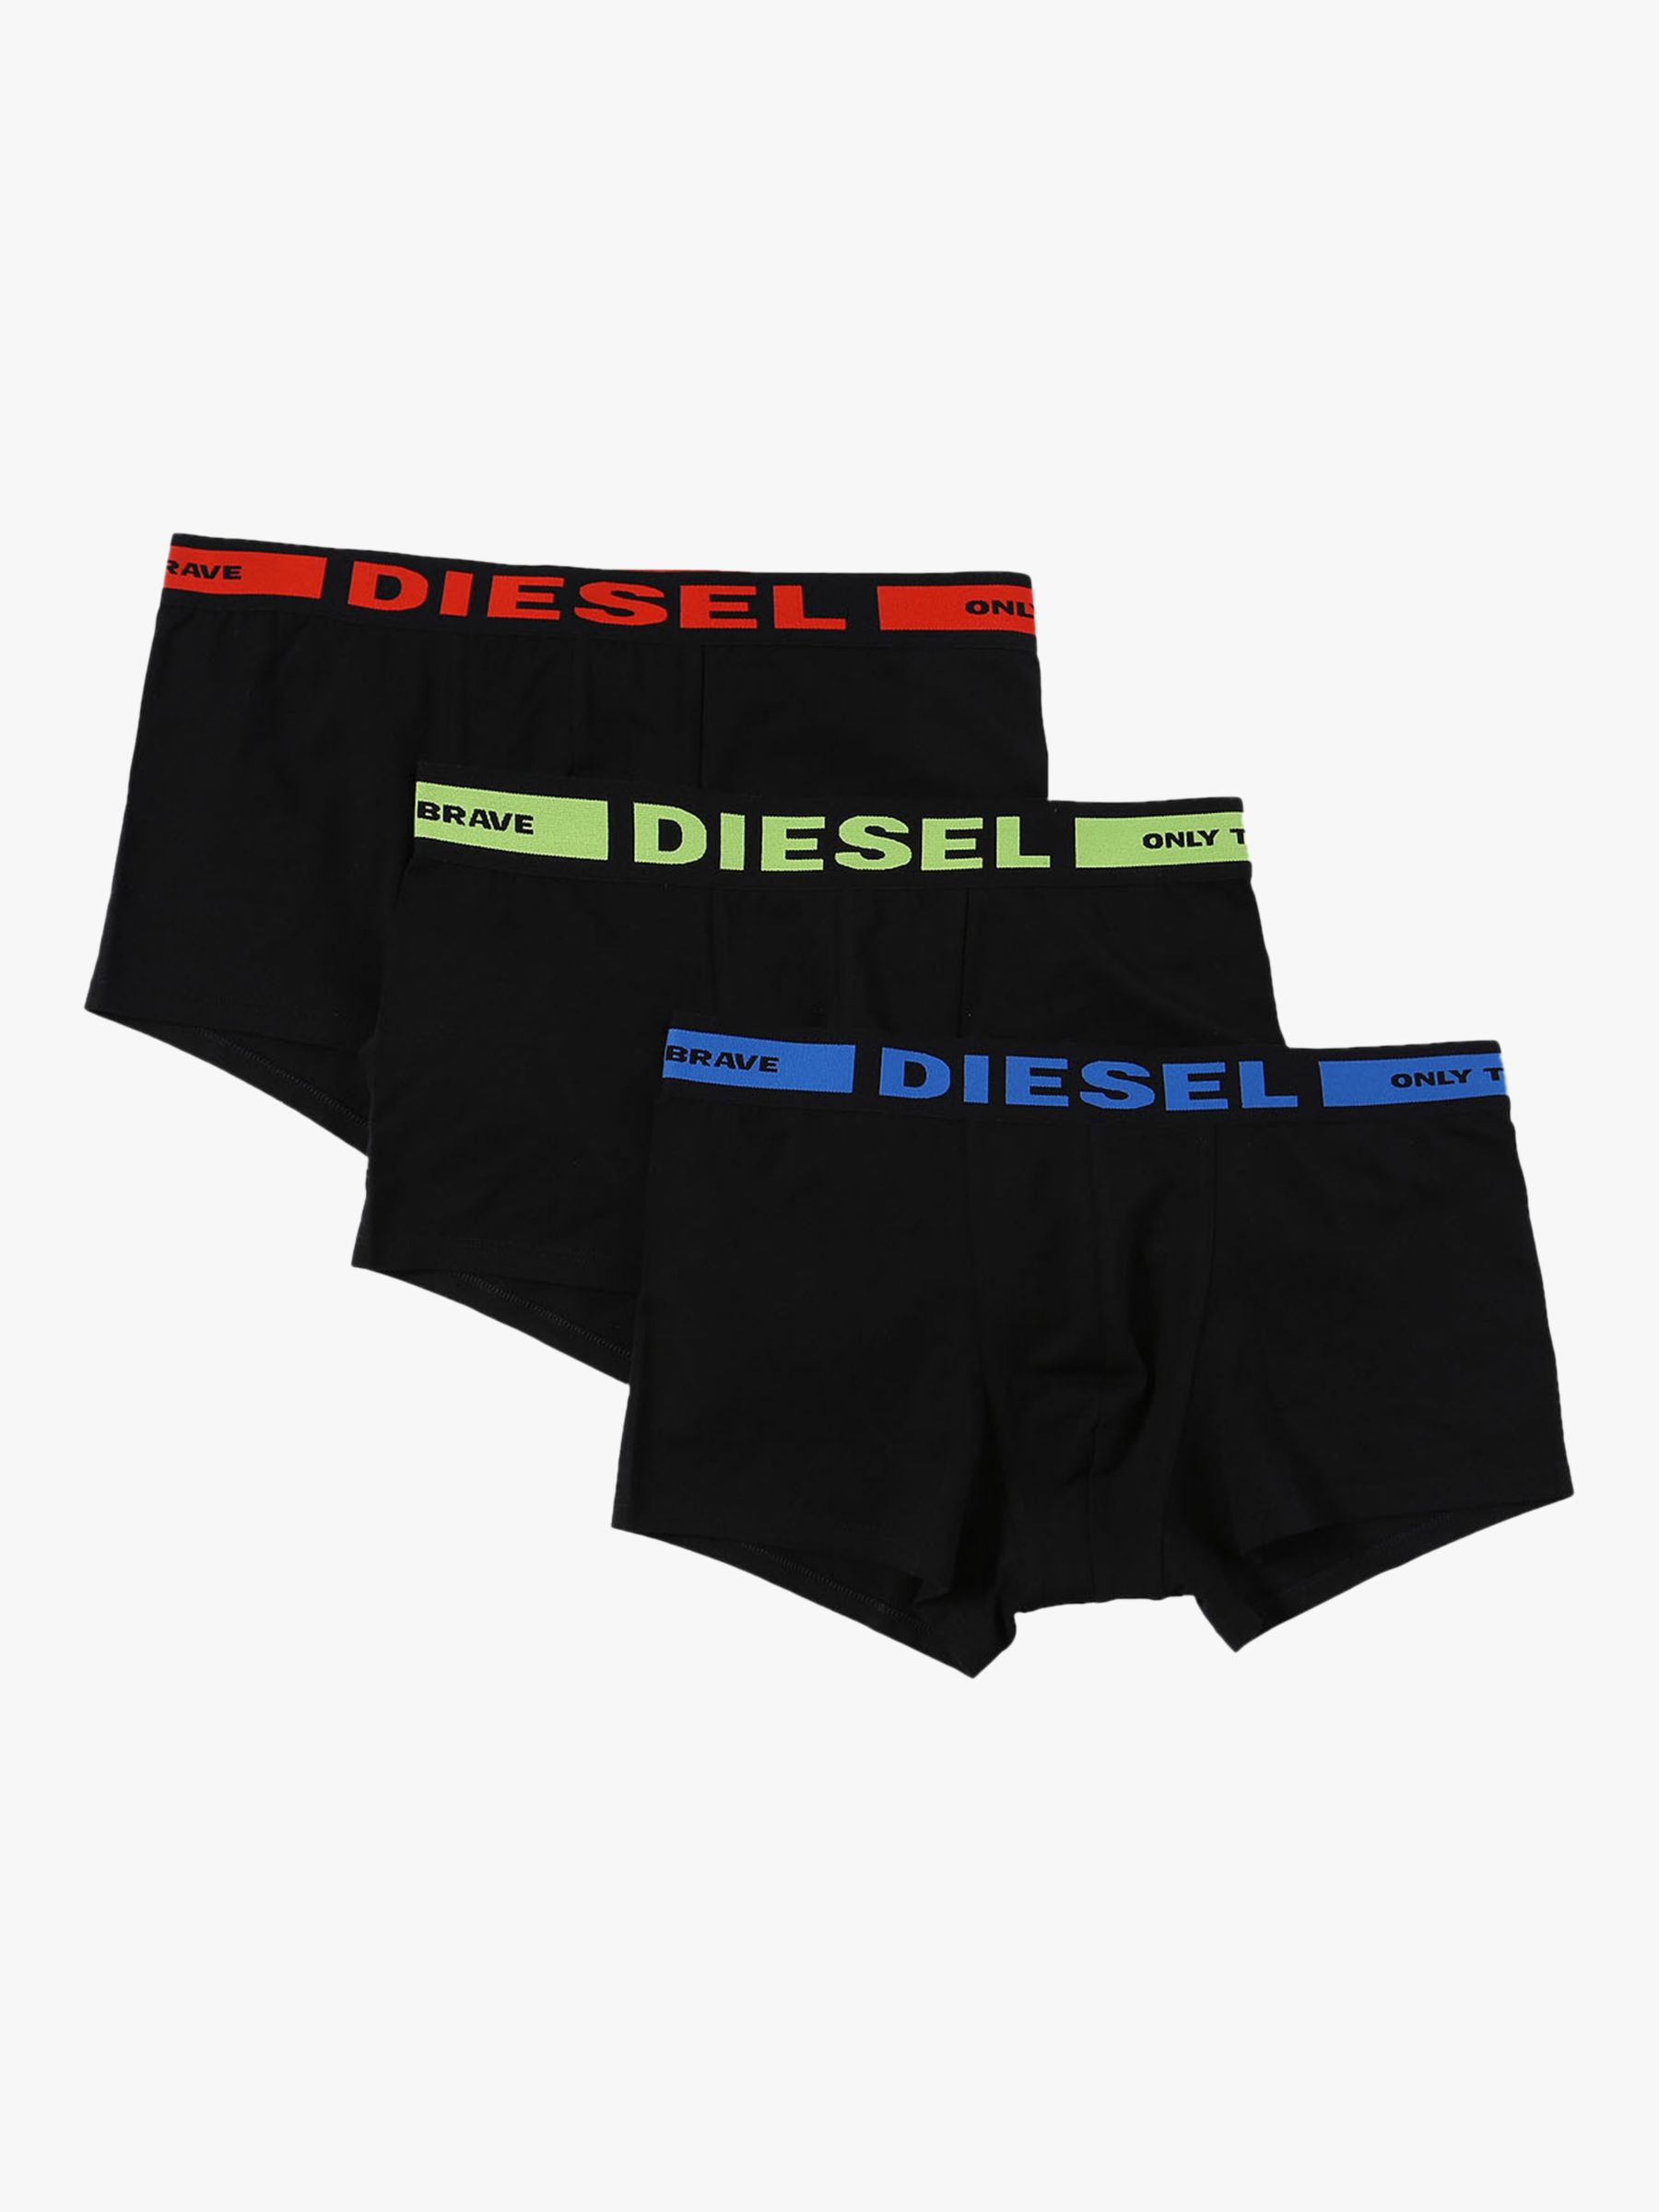 Diesel Diesel Kory Plain Stretch Cotton Trunks, Pack of 3, Black